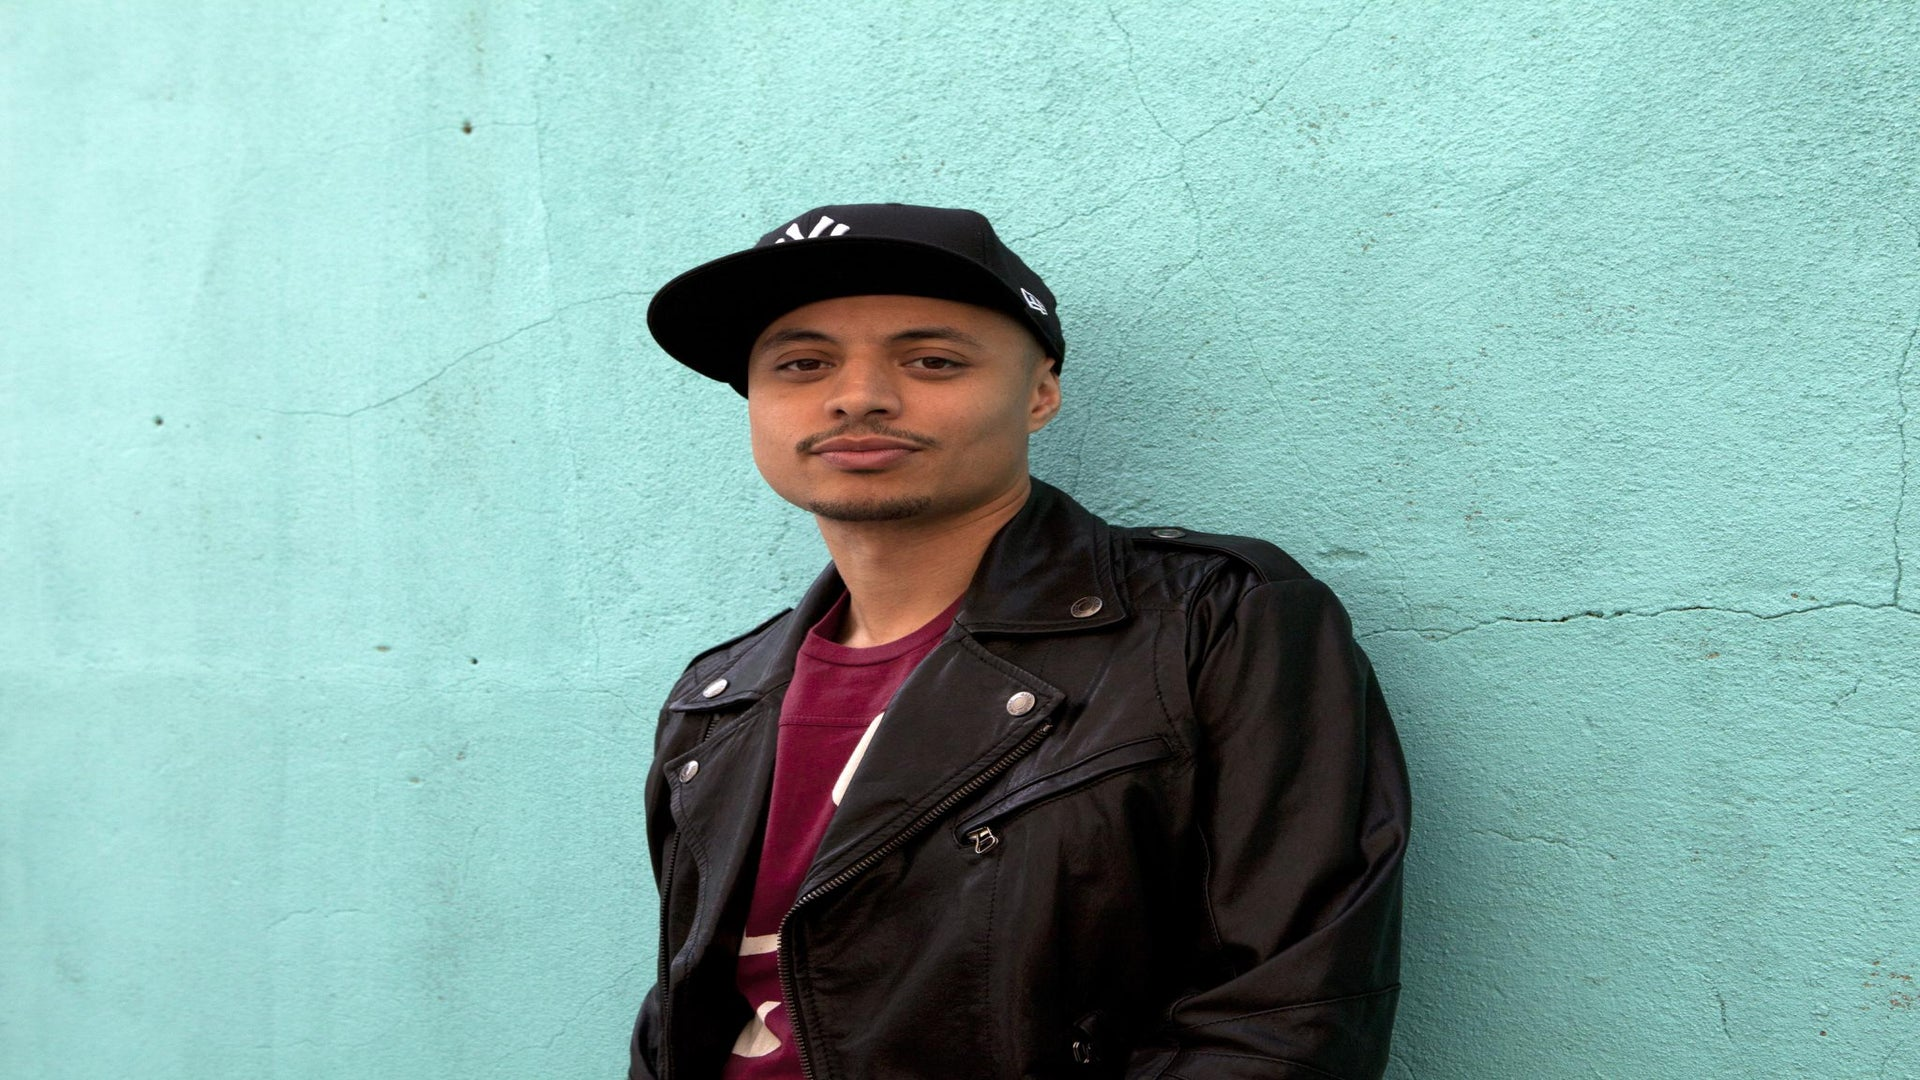 New & Next: Jose James on Finding His Own Musical Path on New Album, the Fate of Jazz Singers